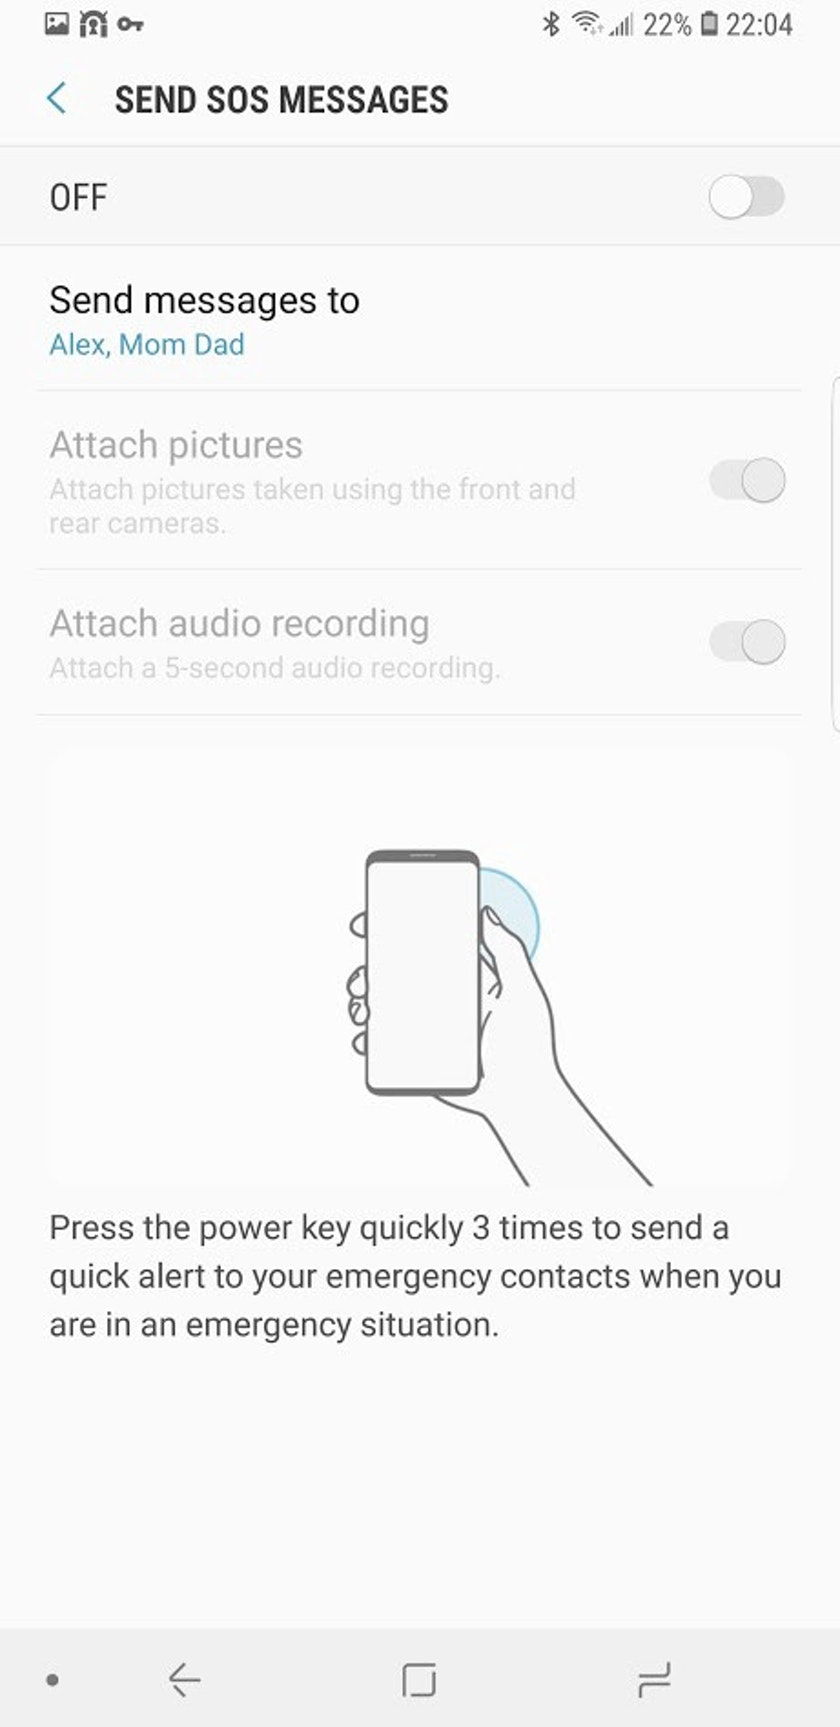 Send SOS messages screen on a Samsung device